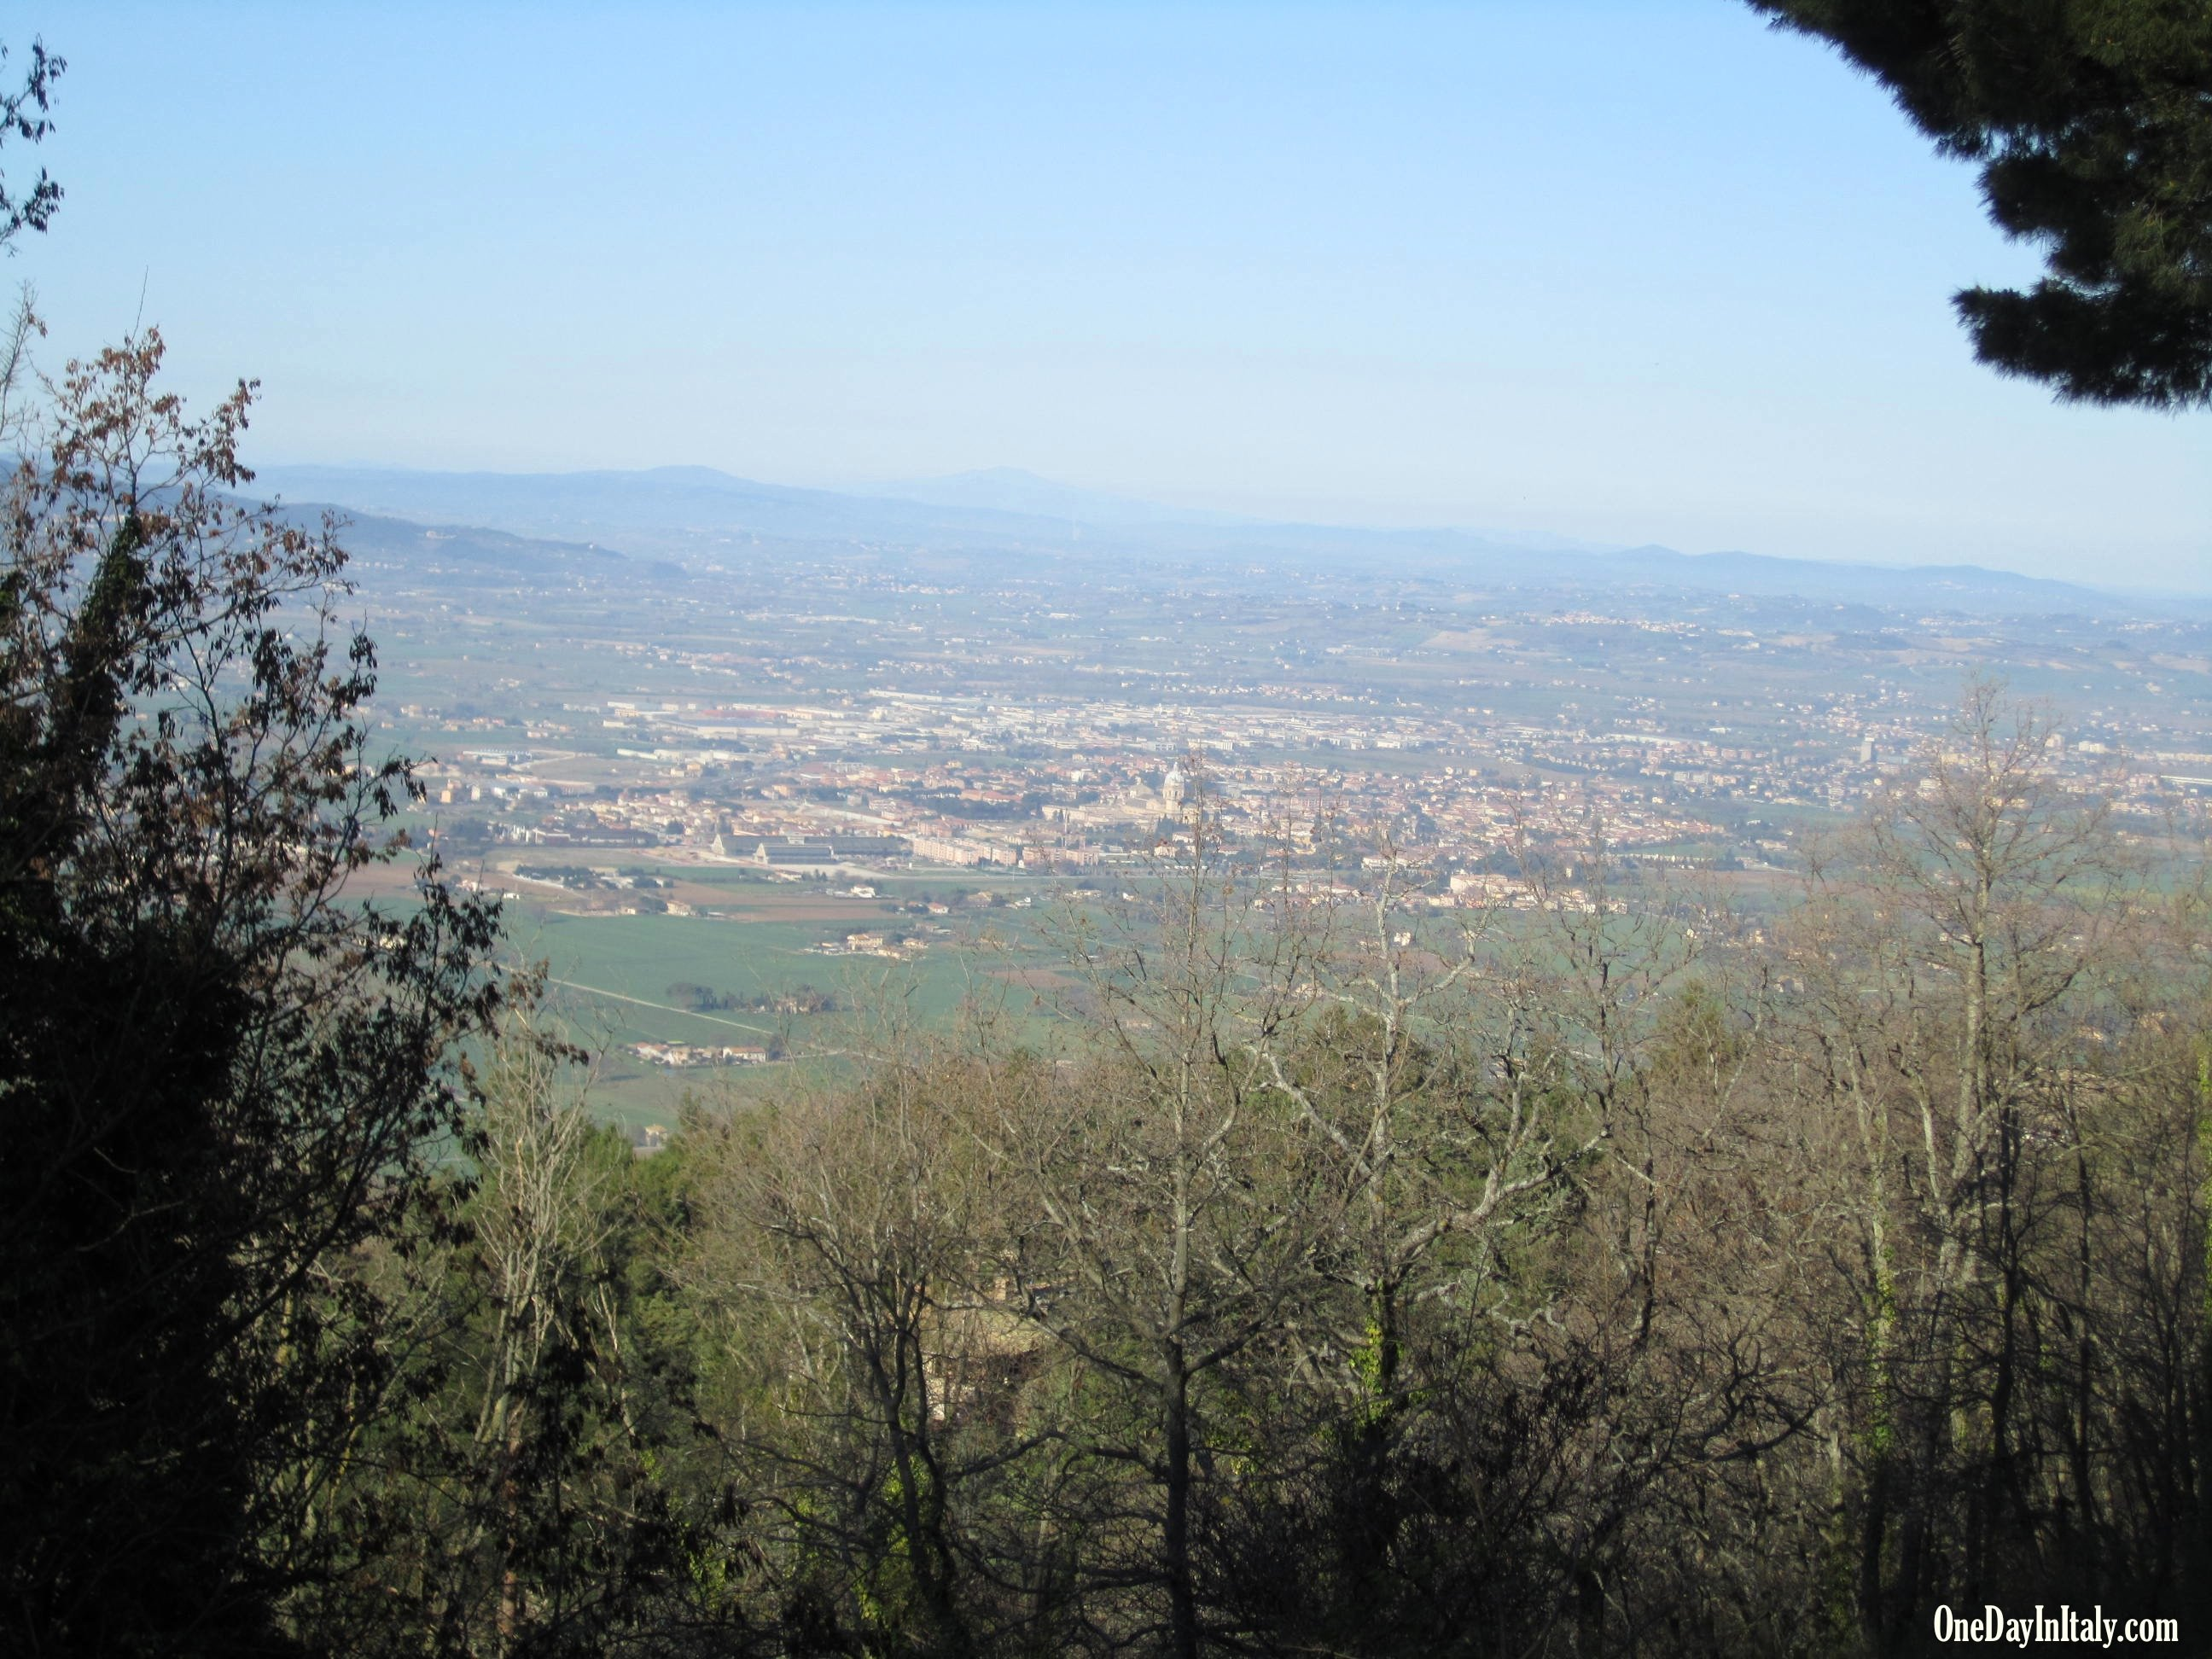 View over the Umbrian Valley